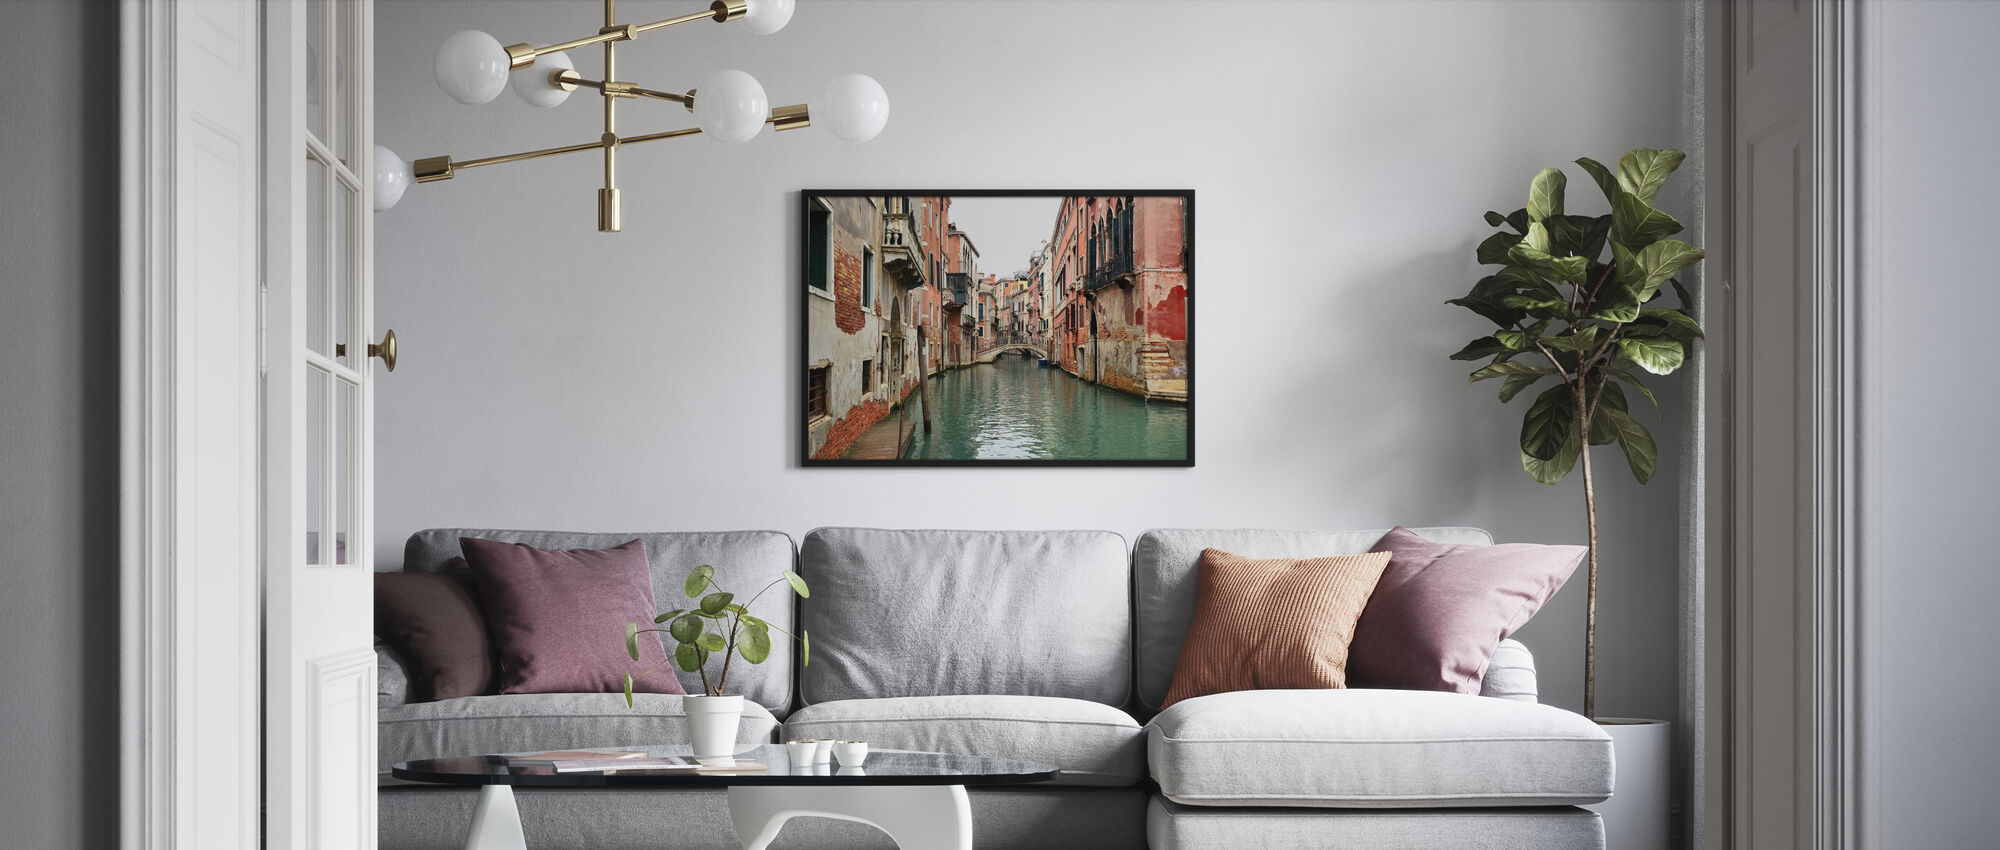 Bricks and Water Alleys in Venice - Poster - Living Room